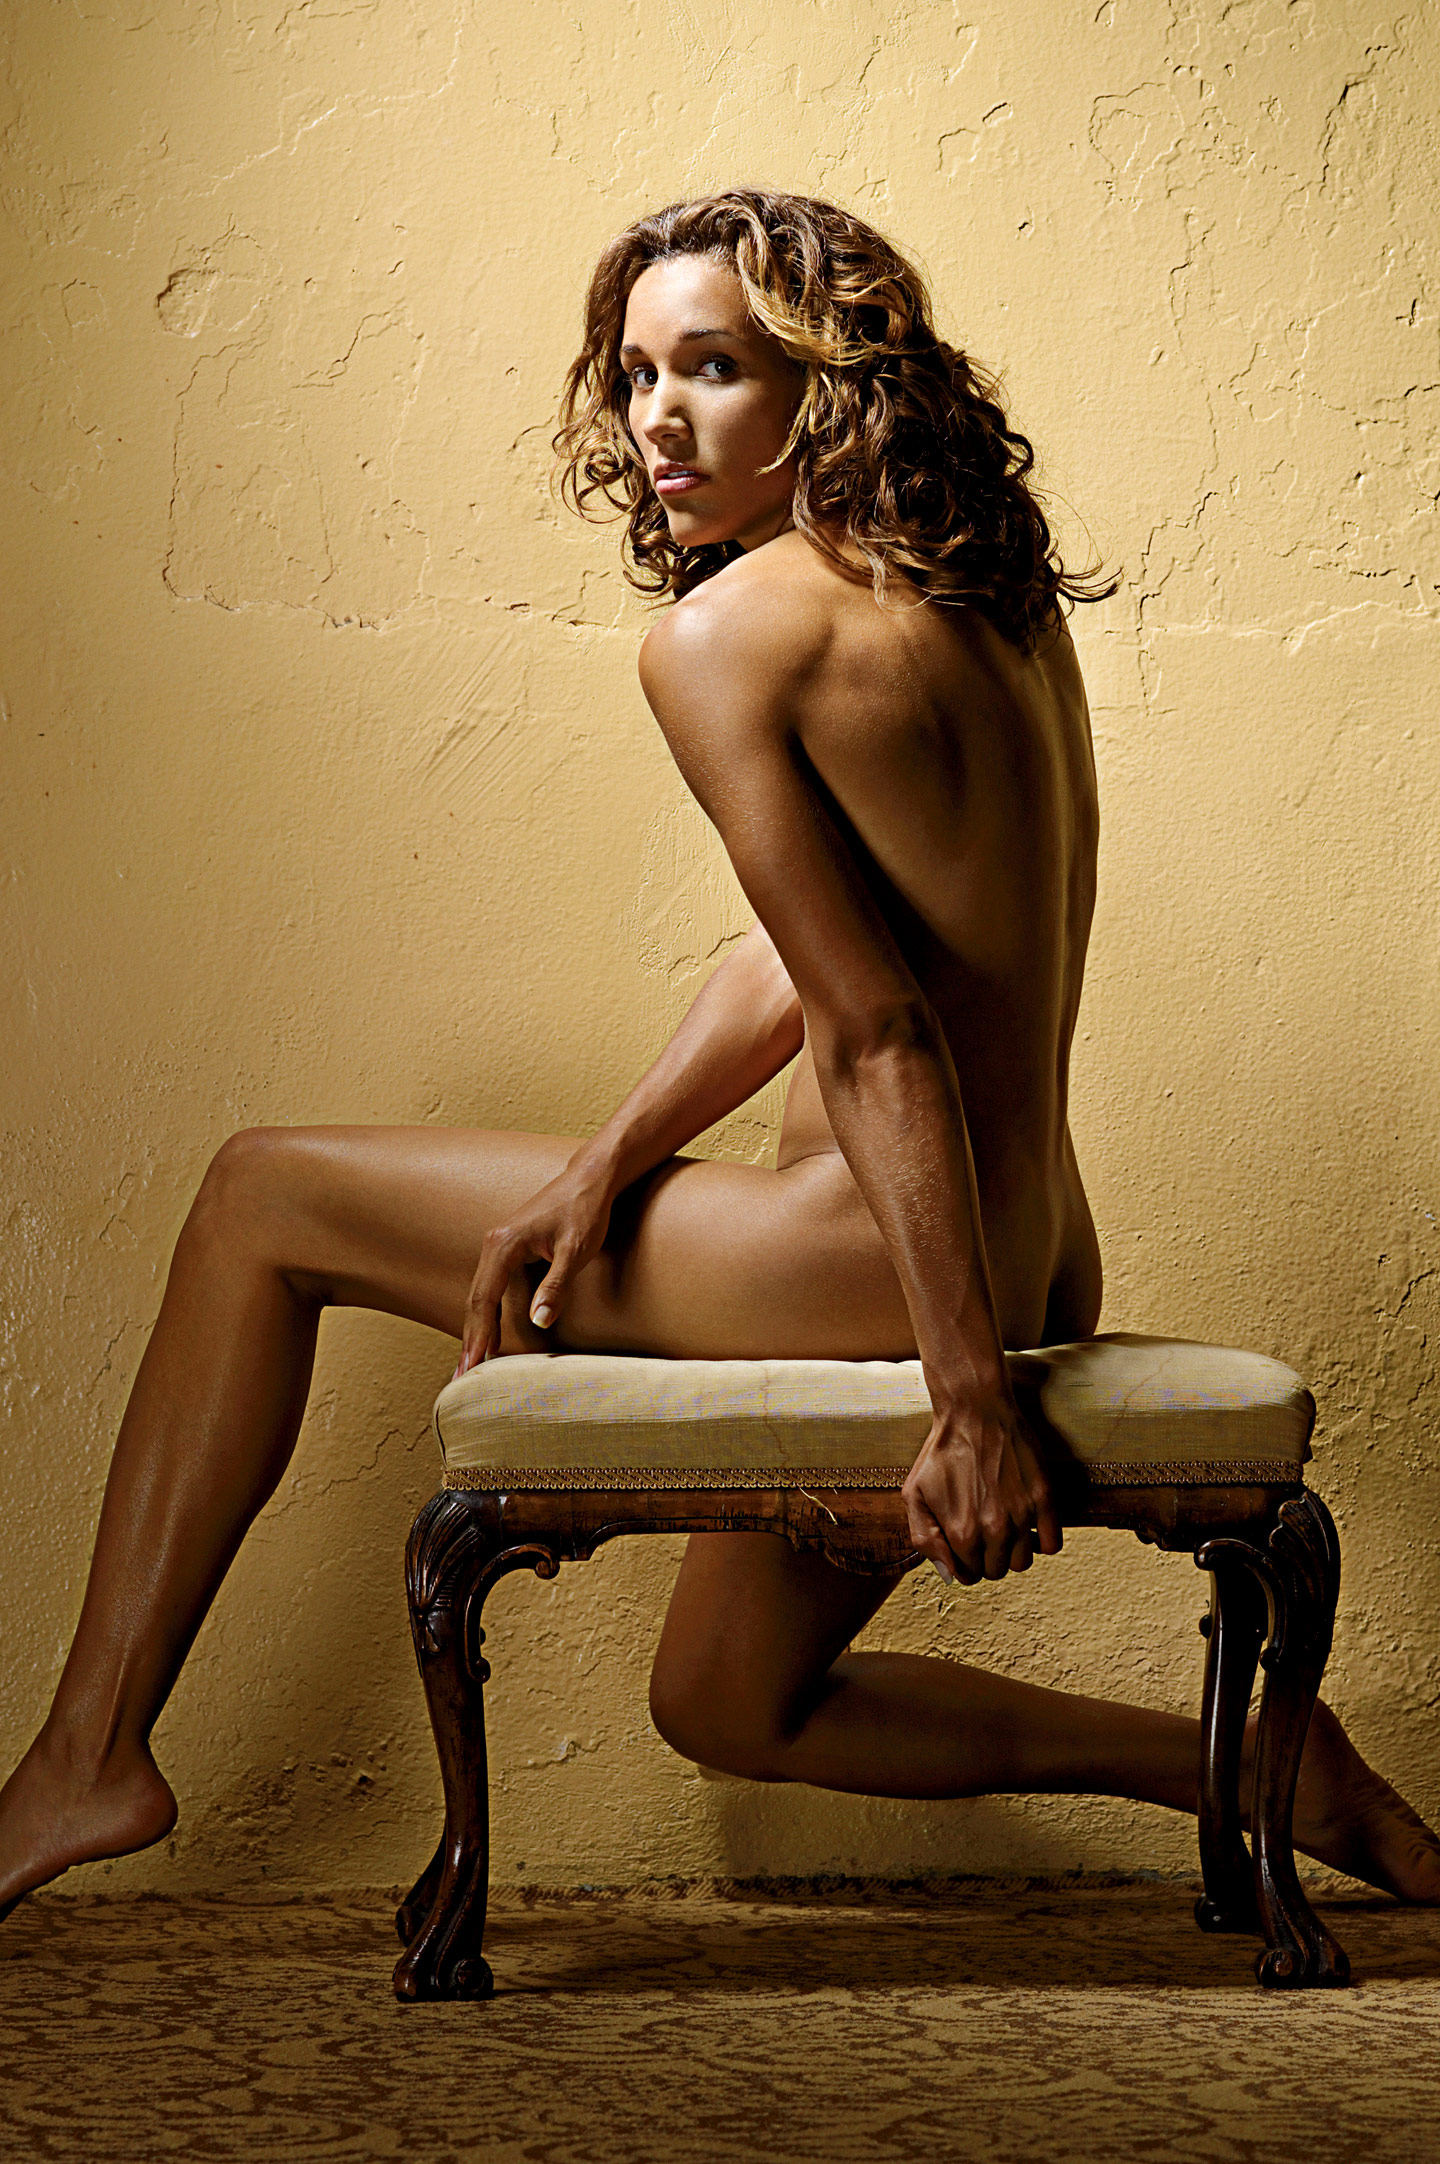 nude hot women athletes